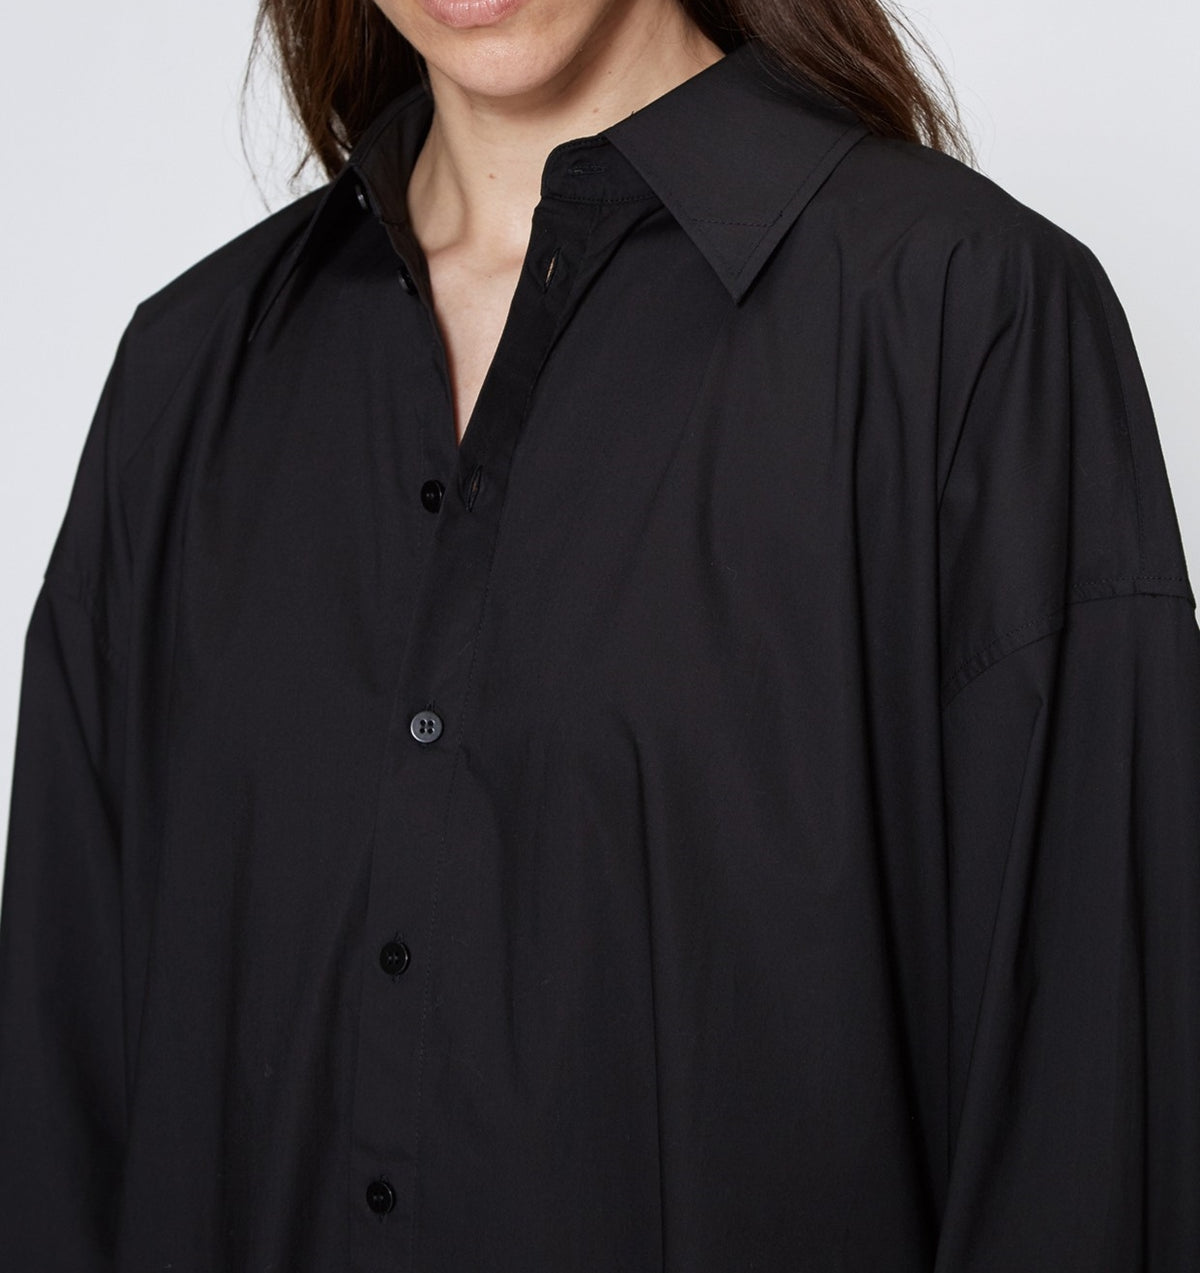 Oversized Shirtdress in Crisp Black Poplin / Pointed collar / Dropped Shoulders / Long sleeves with pleated wrist